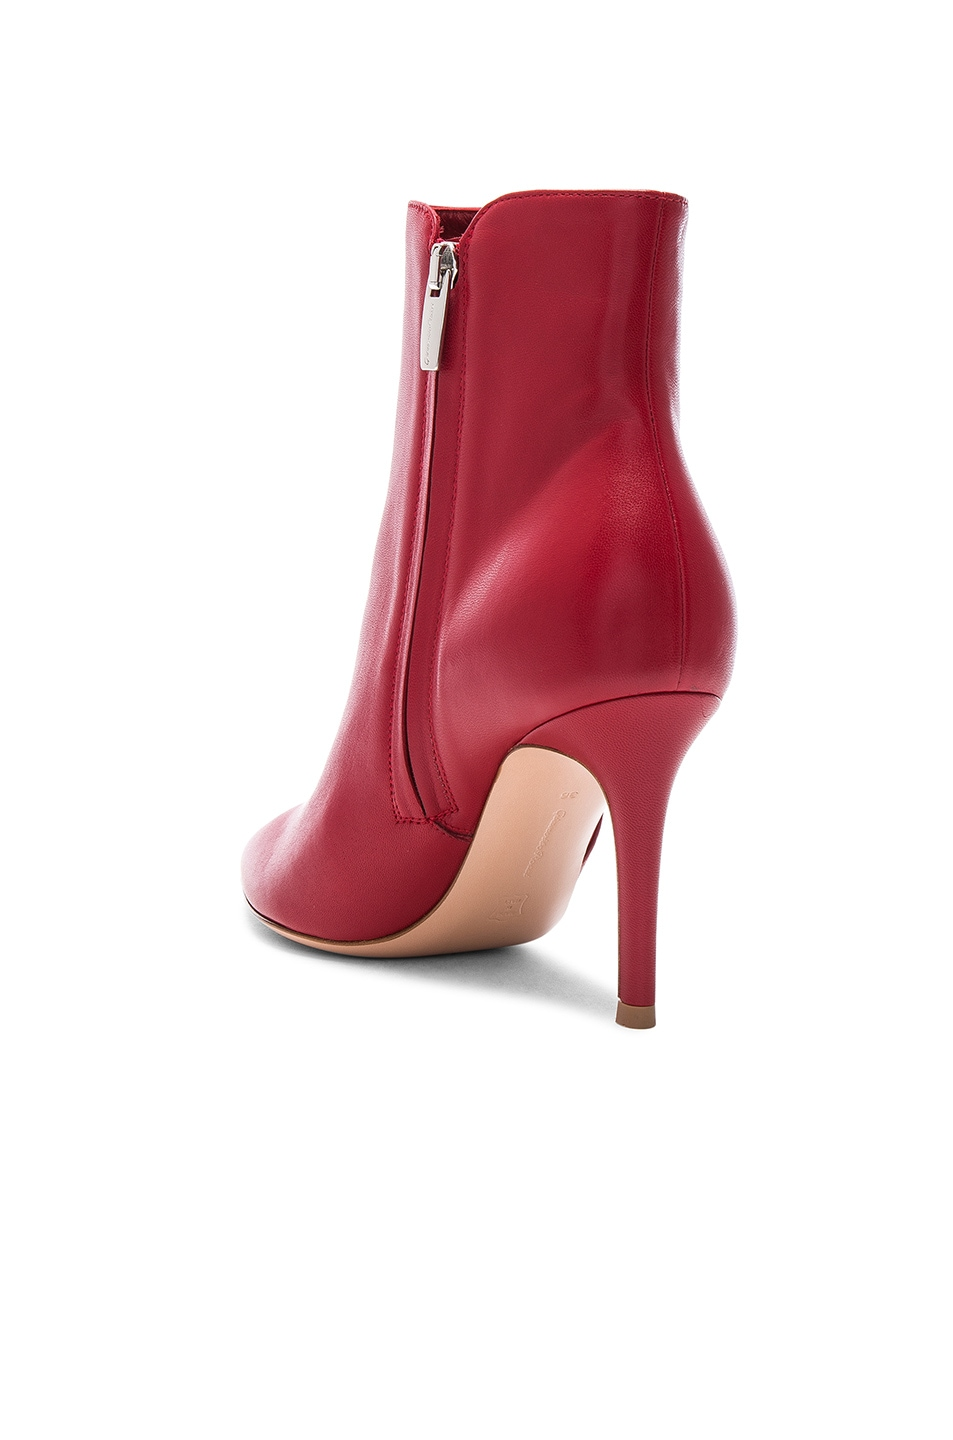 Image 3 of Gianvito Rossi Nappa Leather Levy Ankle Boots in Tabasco Red